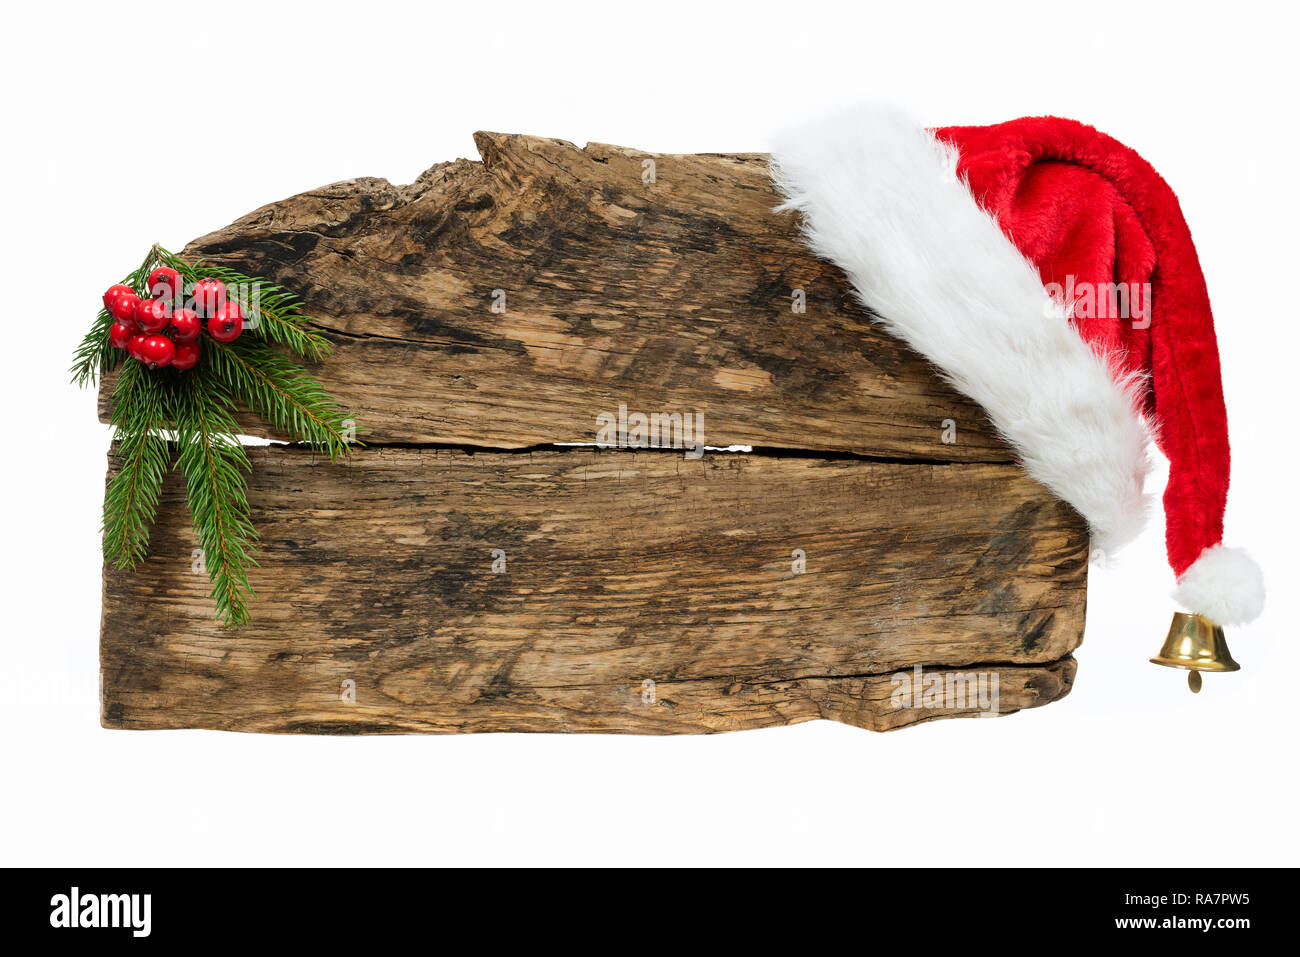 Christmas template - old wooden sign with Santa hat and spruce twig on white background - Stock Image